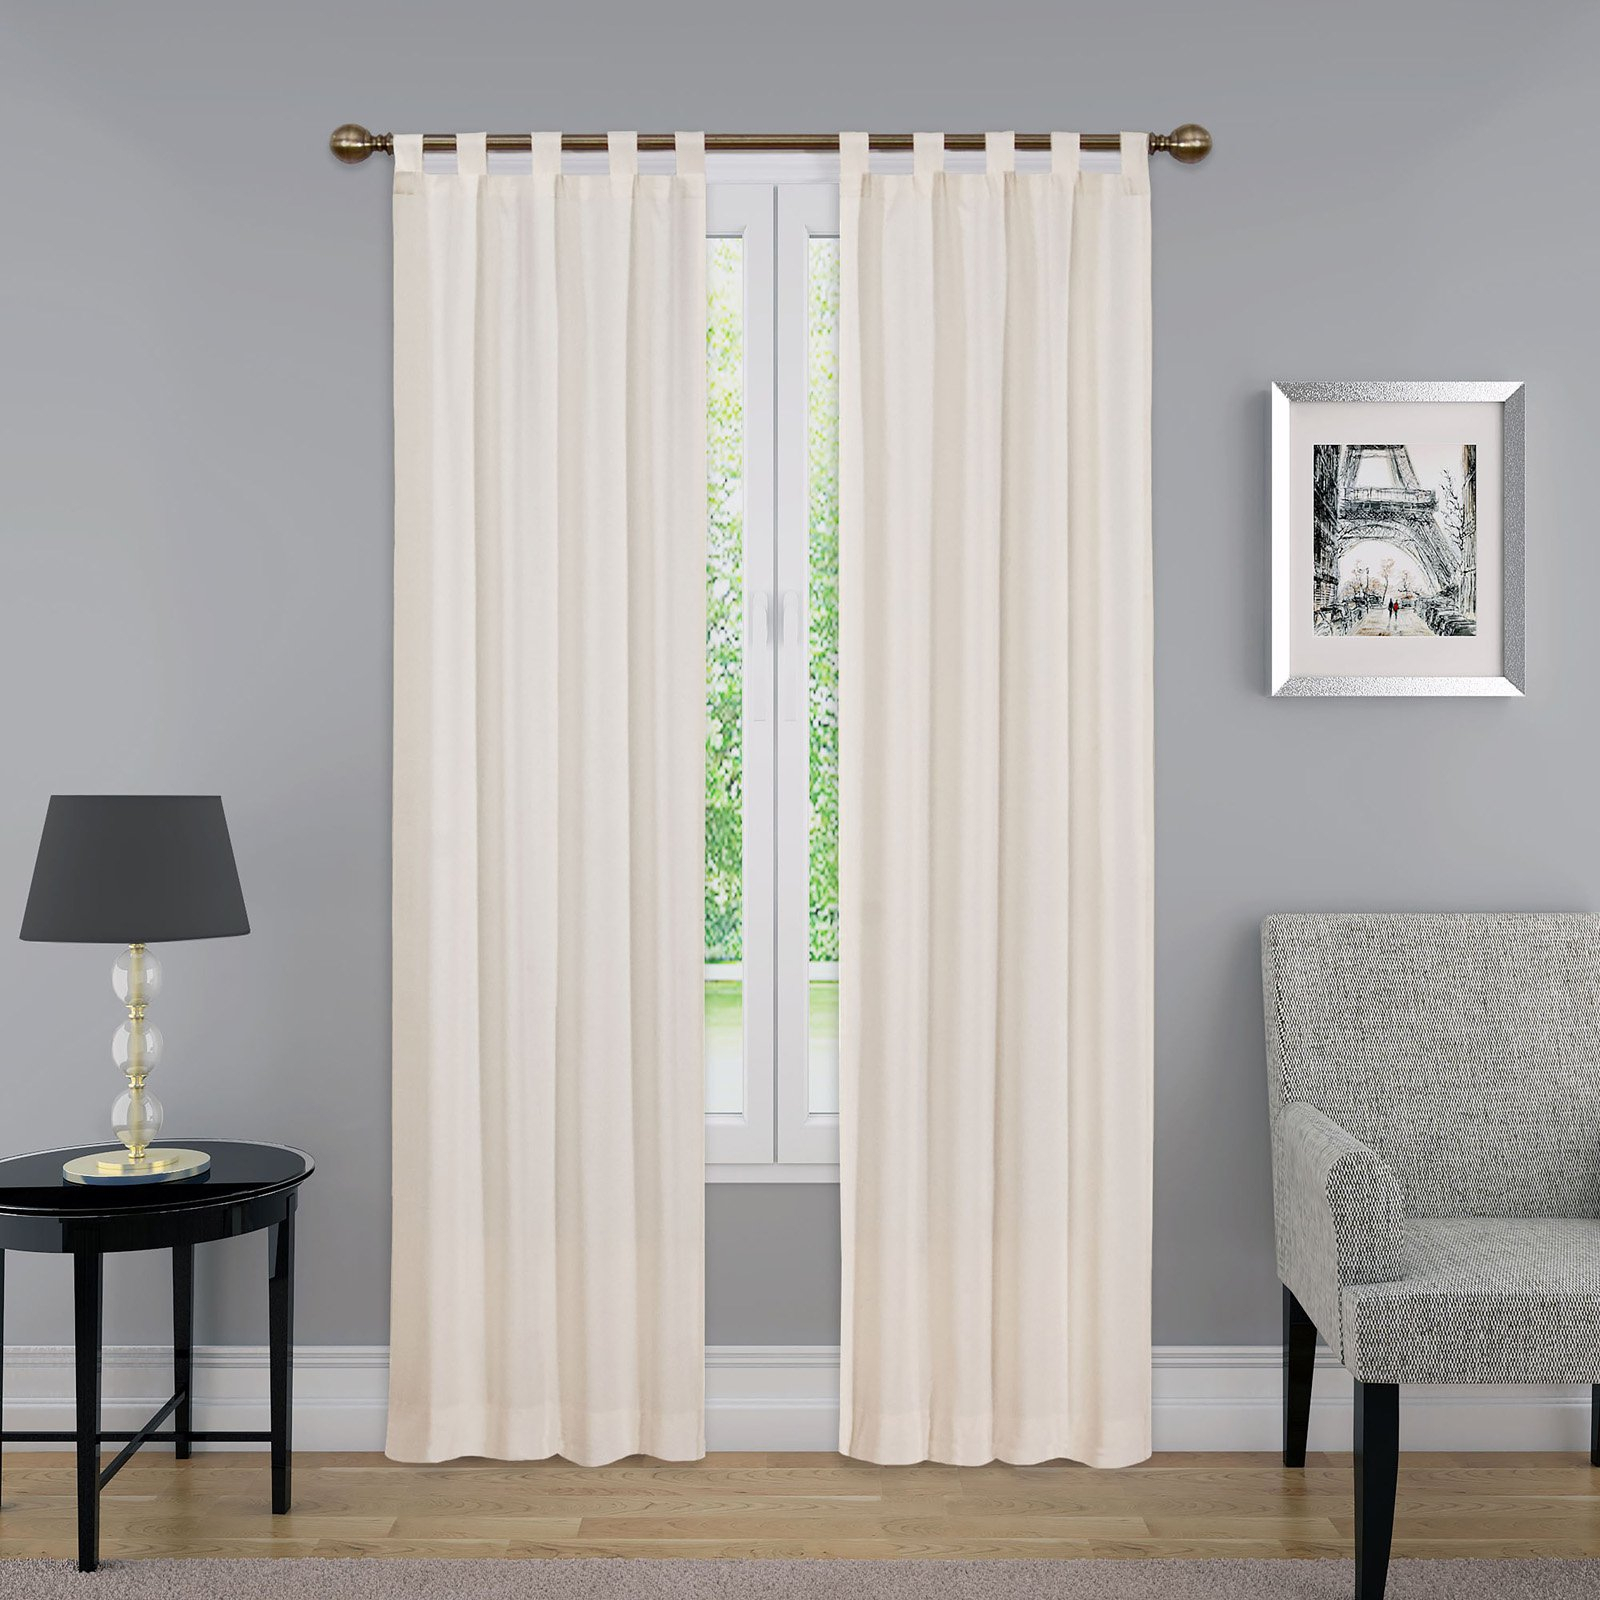 Pairs To Go Montana Curtain Panel Pair Grey In 2019 Inside Pairs To Go Victoria Voile Curtain Panel Pairs (View 16 of 20)